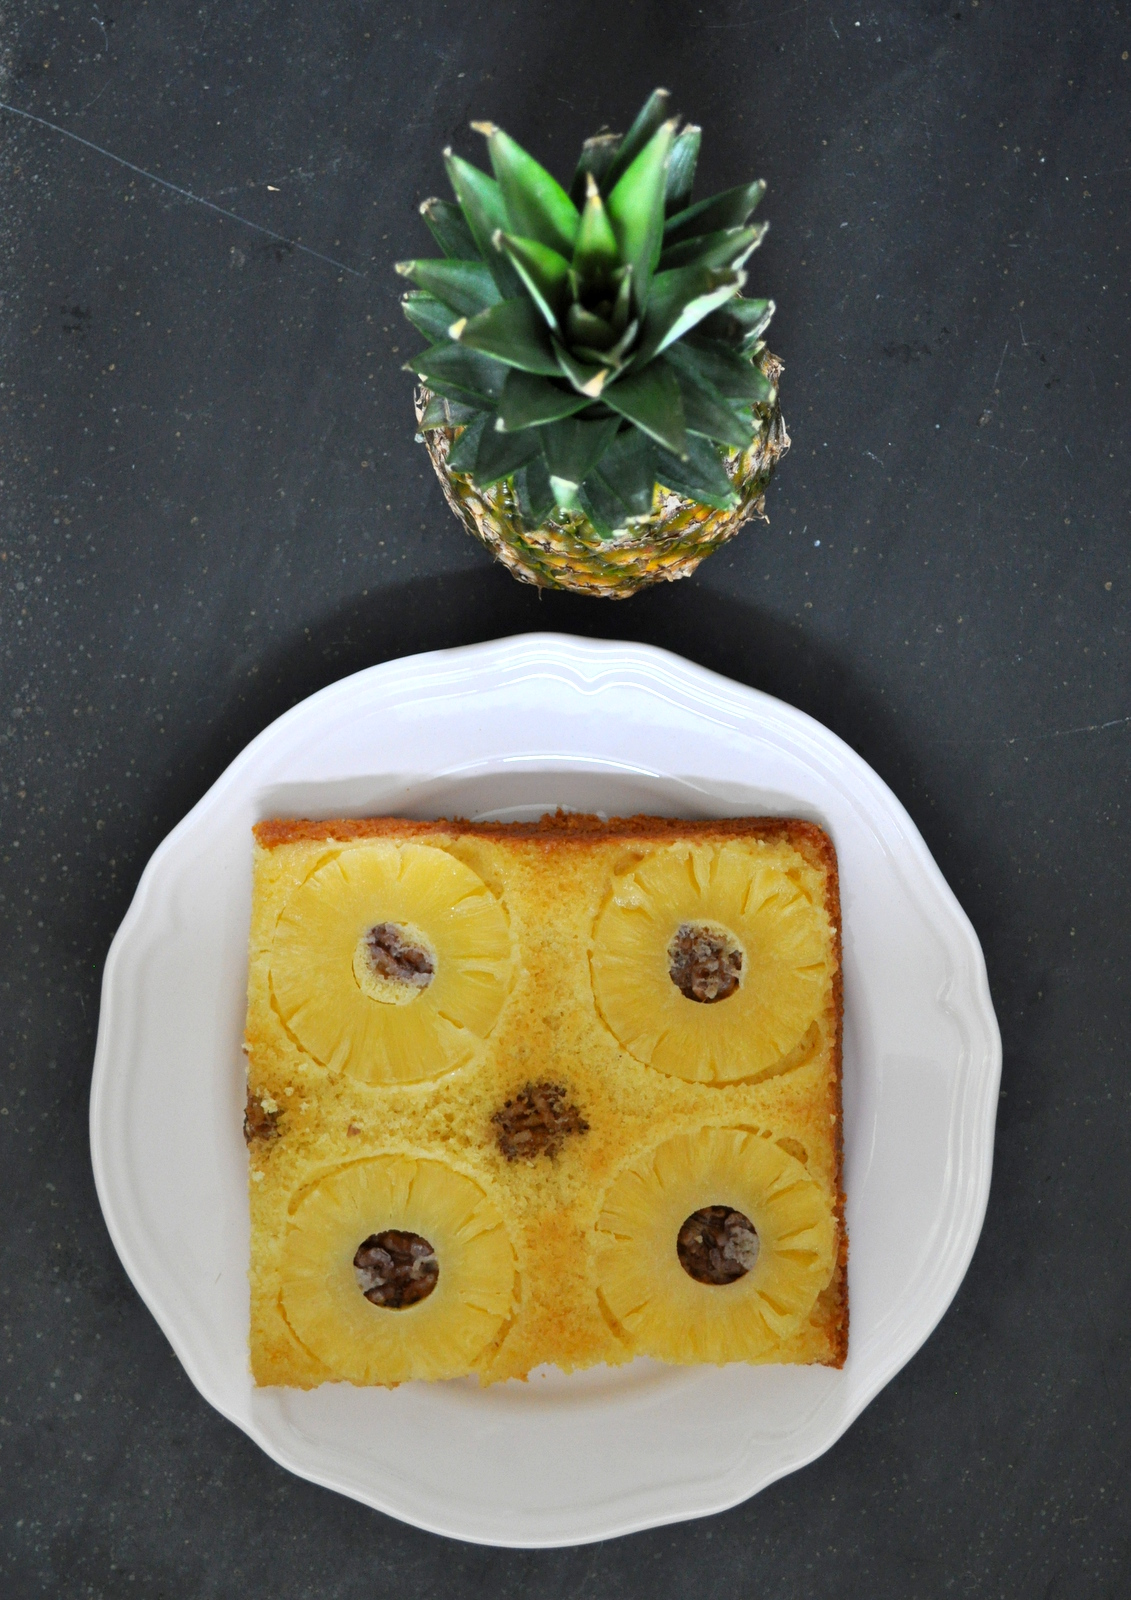 pineappleandwalnutbake 049